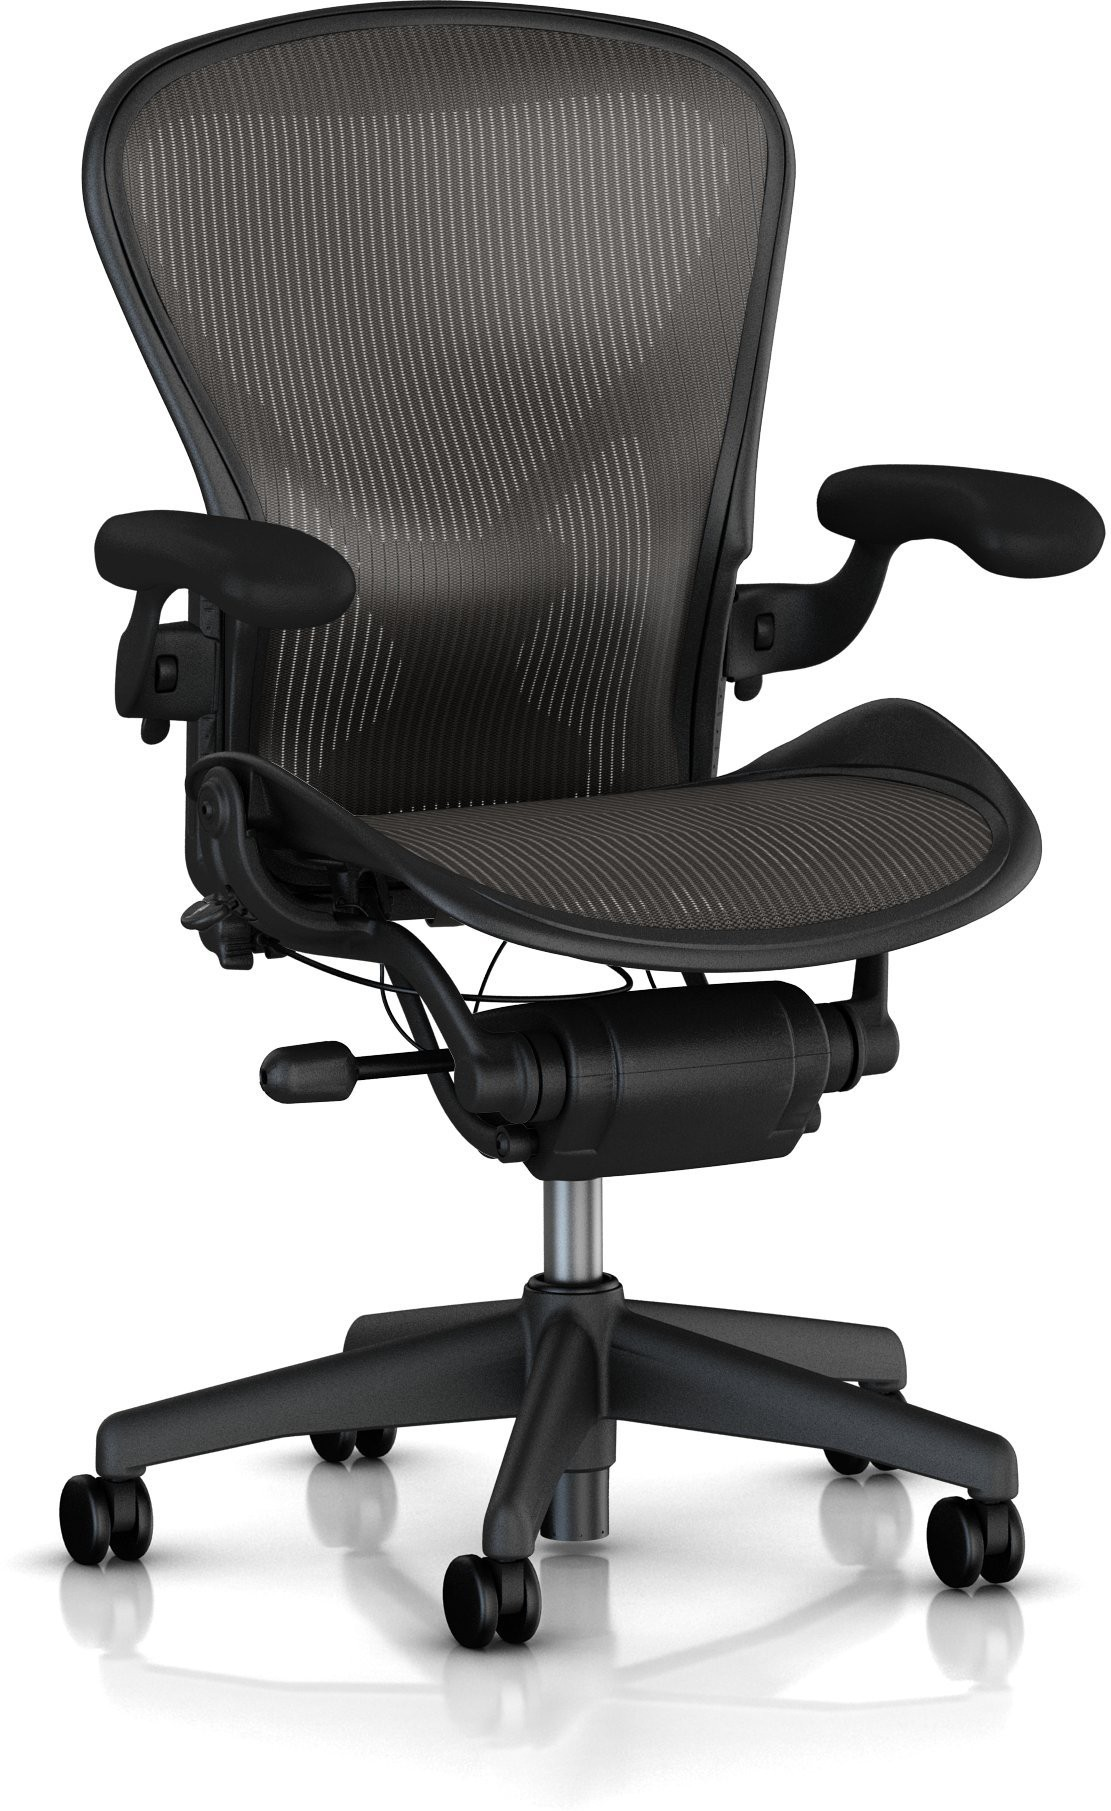 View HermanMiller Aeron - Classic Carbon Pellicle : Graphite base : Pellicle Backrest and Seat NA Office Chair(Black) Furniture (HermanMiller)